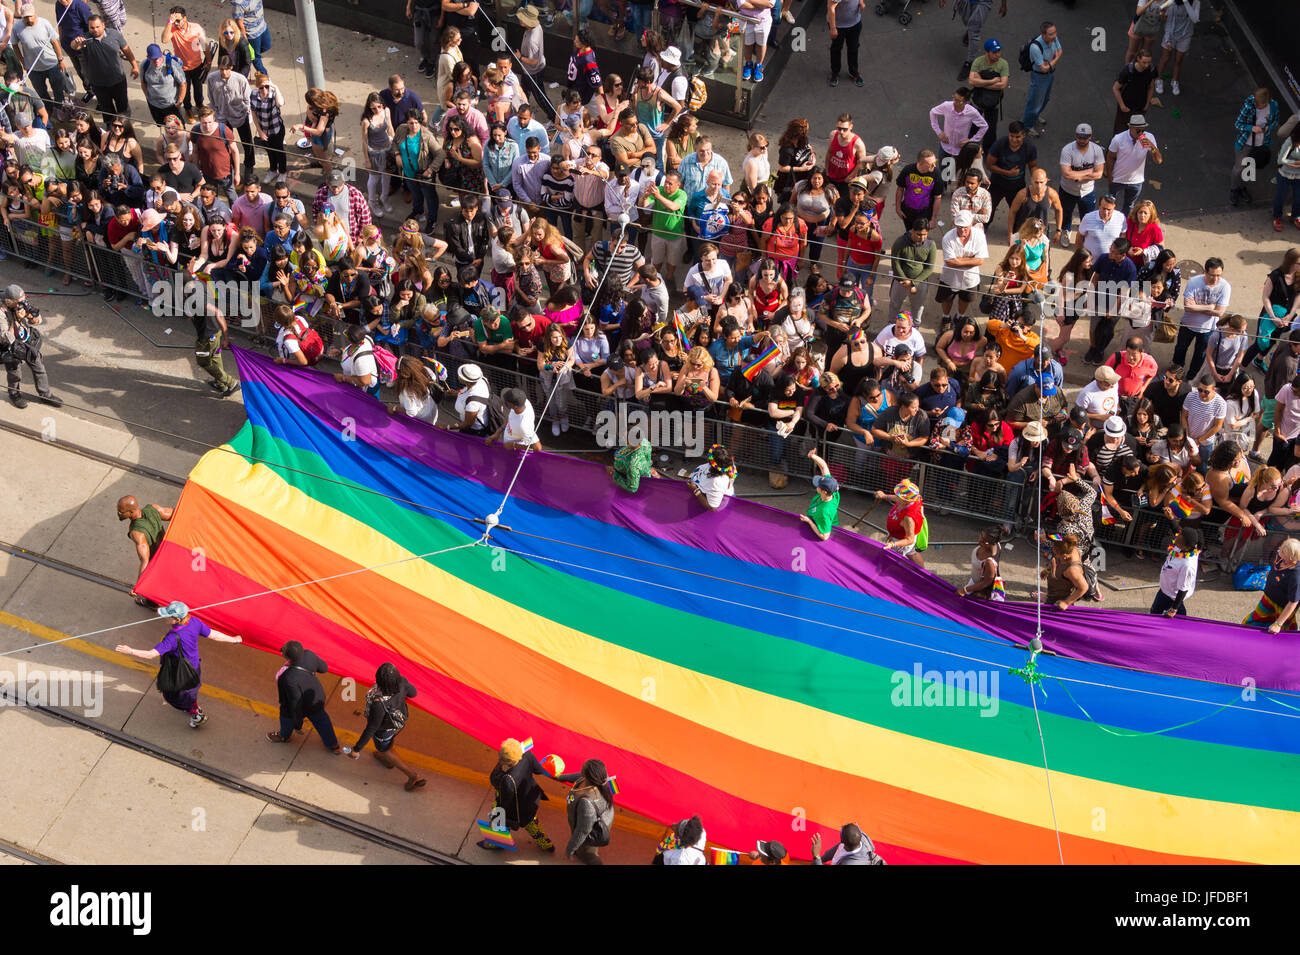 Toronto, Canada - 25 June 2017: Giant gay rainbow flag as seen from above during Toronto Pride Parade (Yonge-Dundas - Stock Image